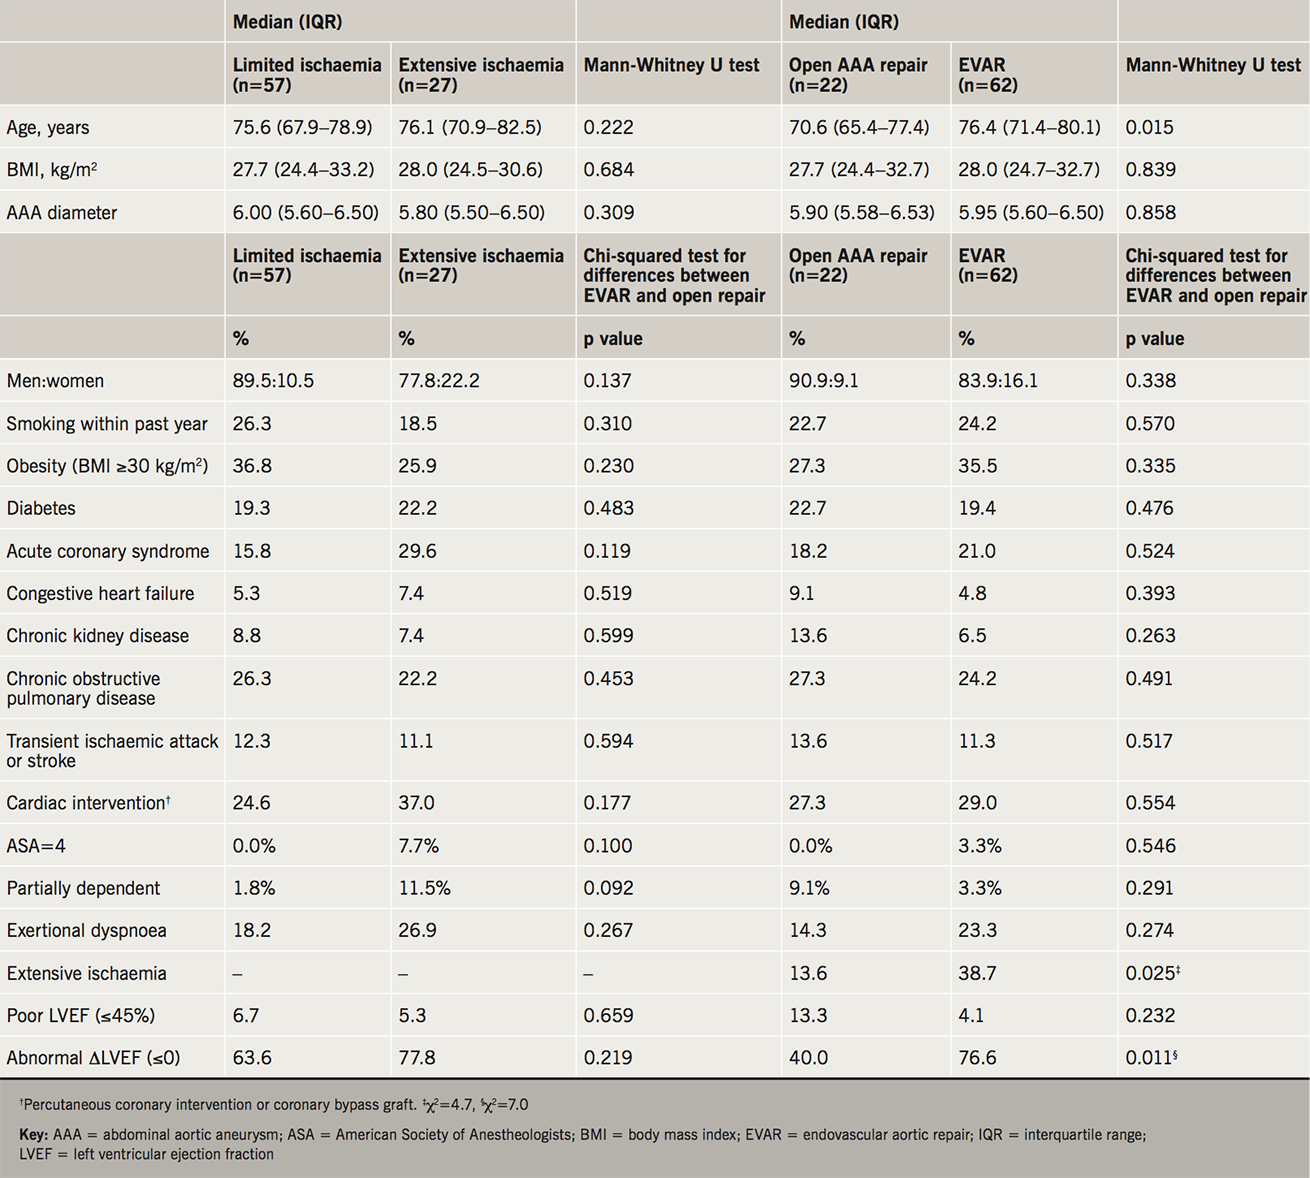 MacGregor Table 1. Characteristics of 72 male (median age 77.4 years, interquartile range [IQR] 67.9–79.6) and 12 female patients (median age 77.1 years, IQR 75.7–82.3) who underwent endovascular aortic repairs (EVAR) or open abdominal aortic aneurysm (AAA) surgery